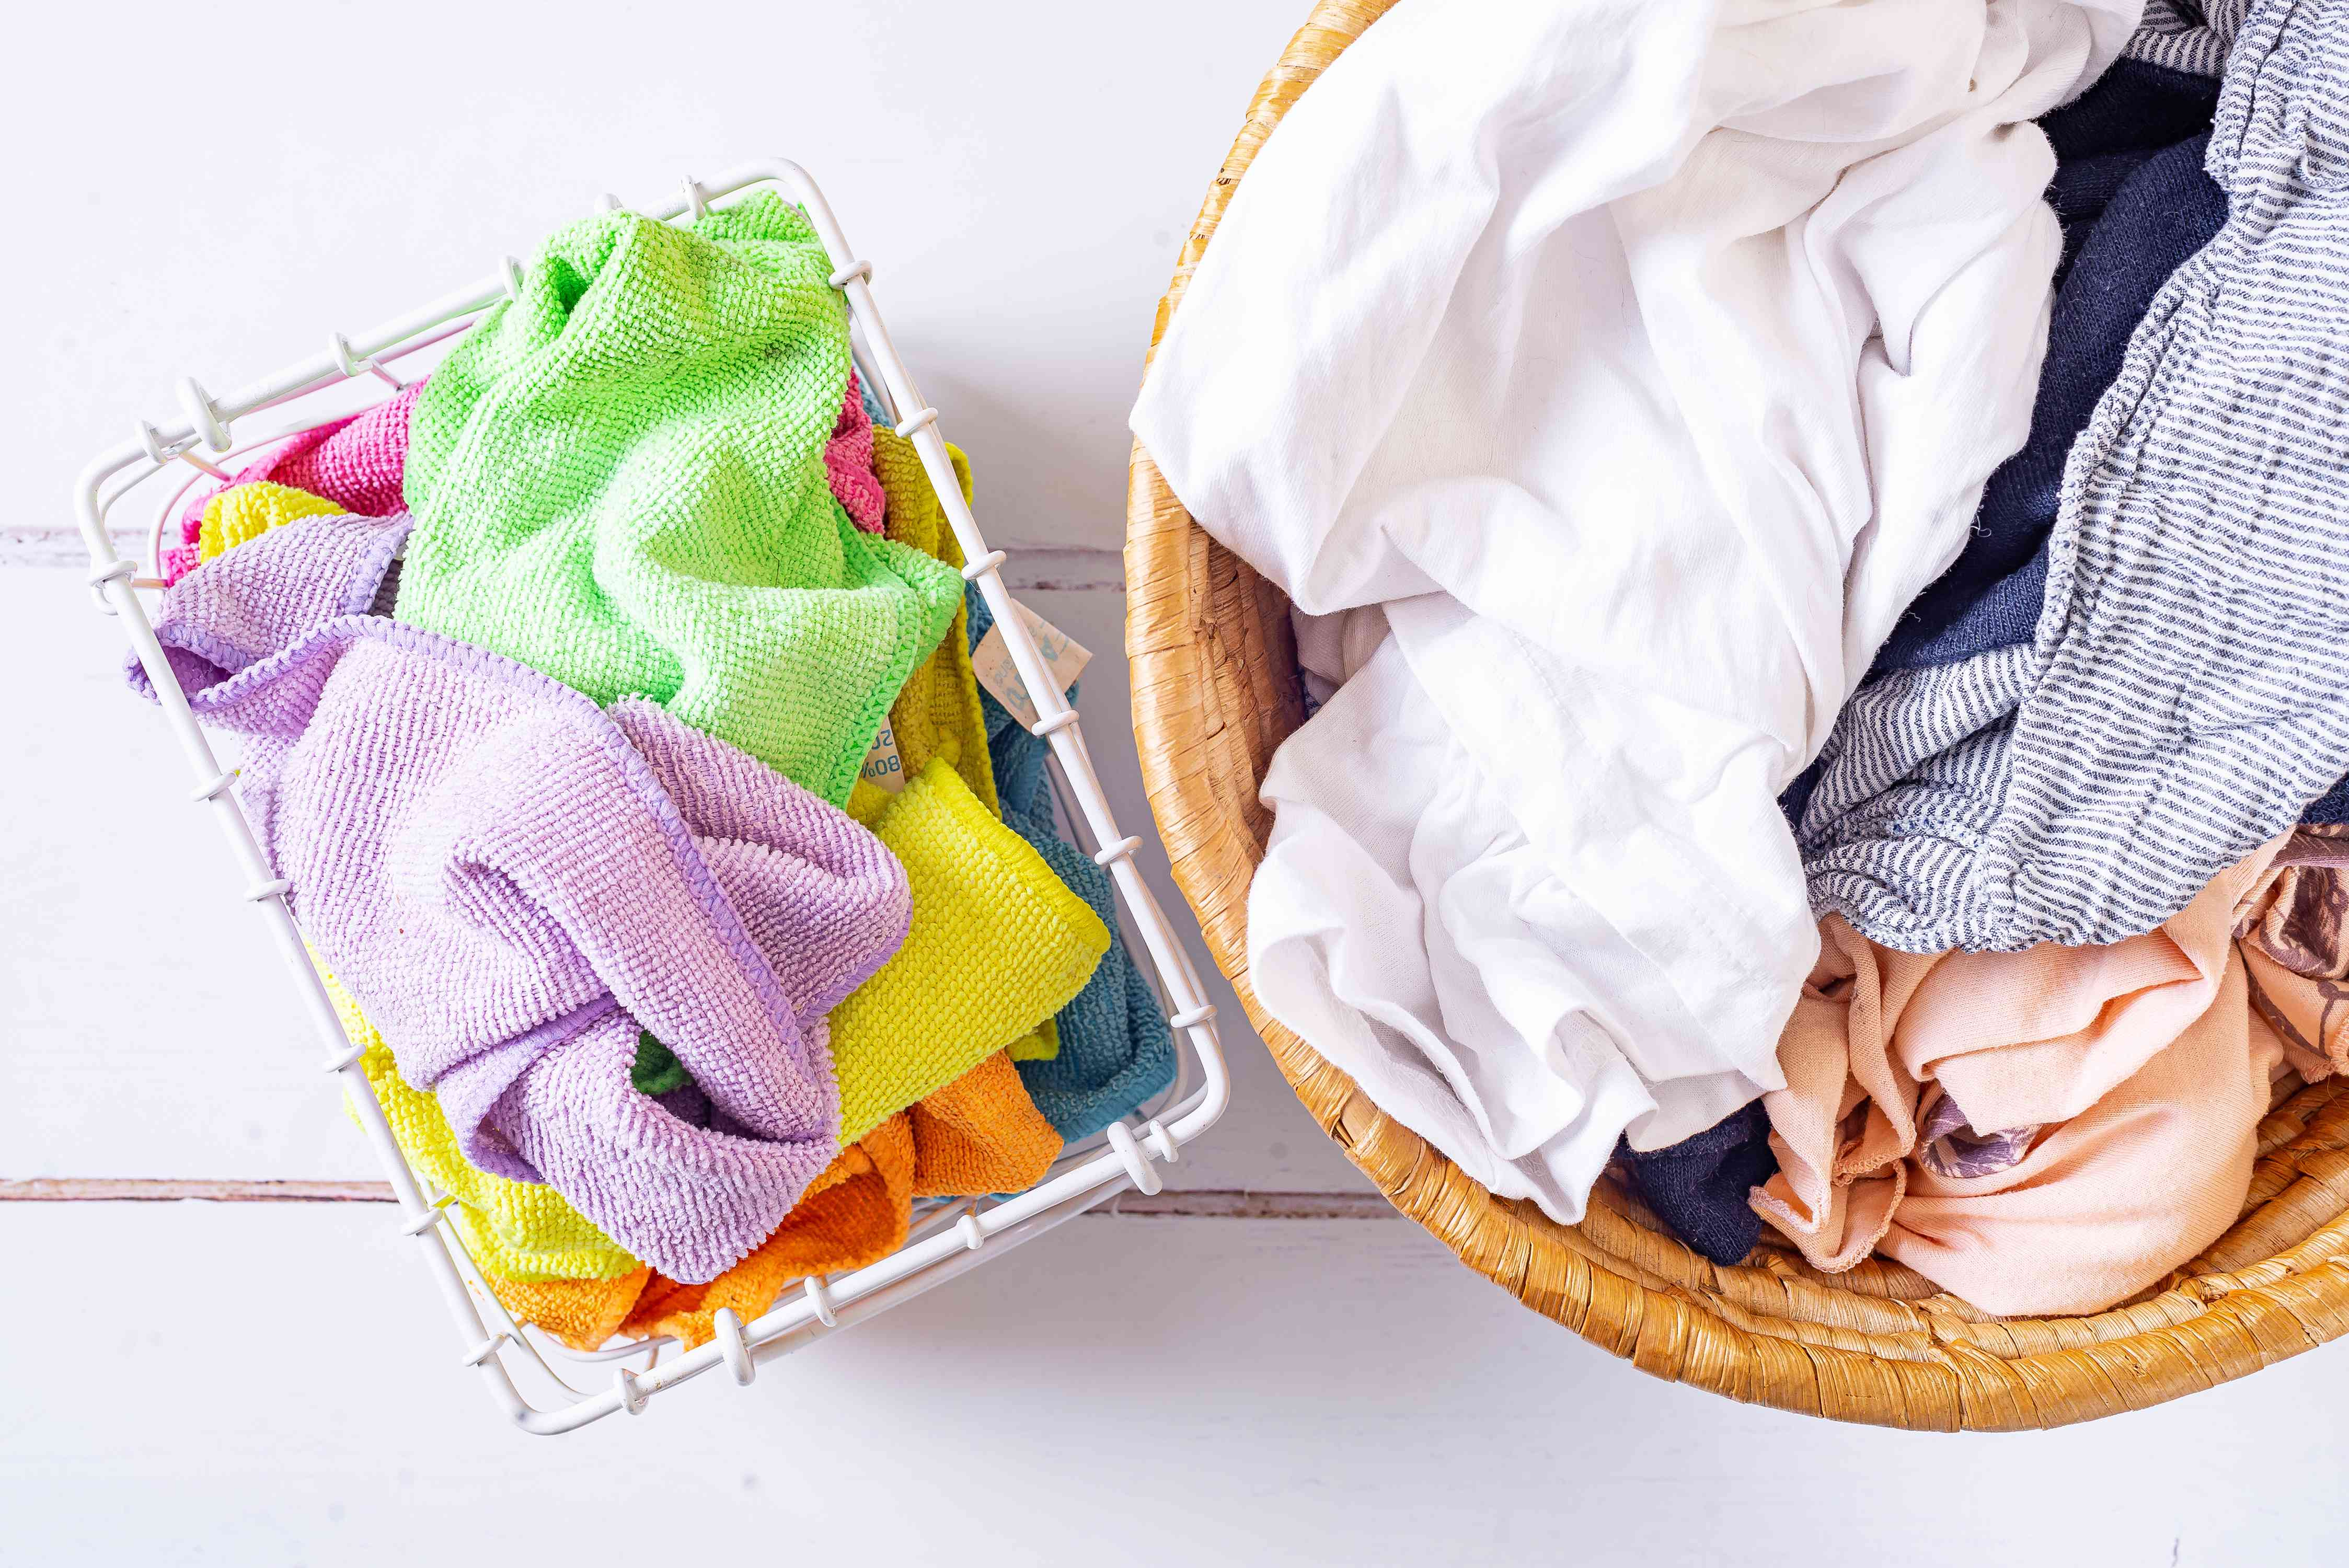 Microfiber cloths sorted out of laundry into white wired container